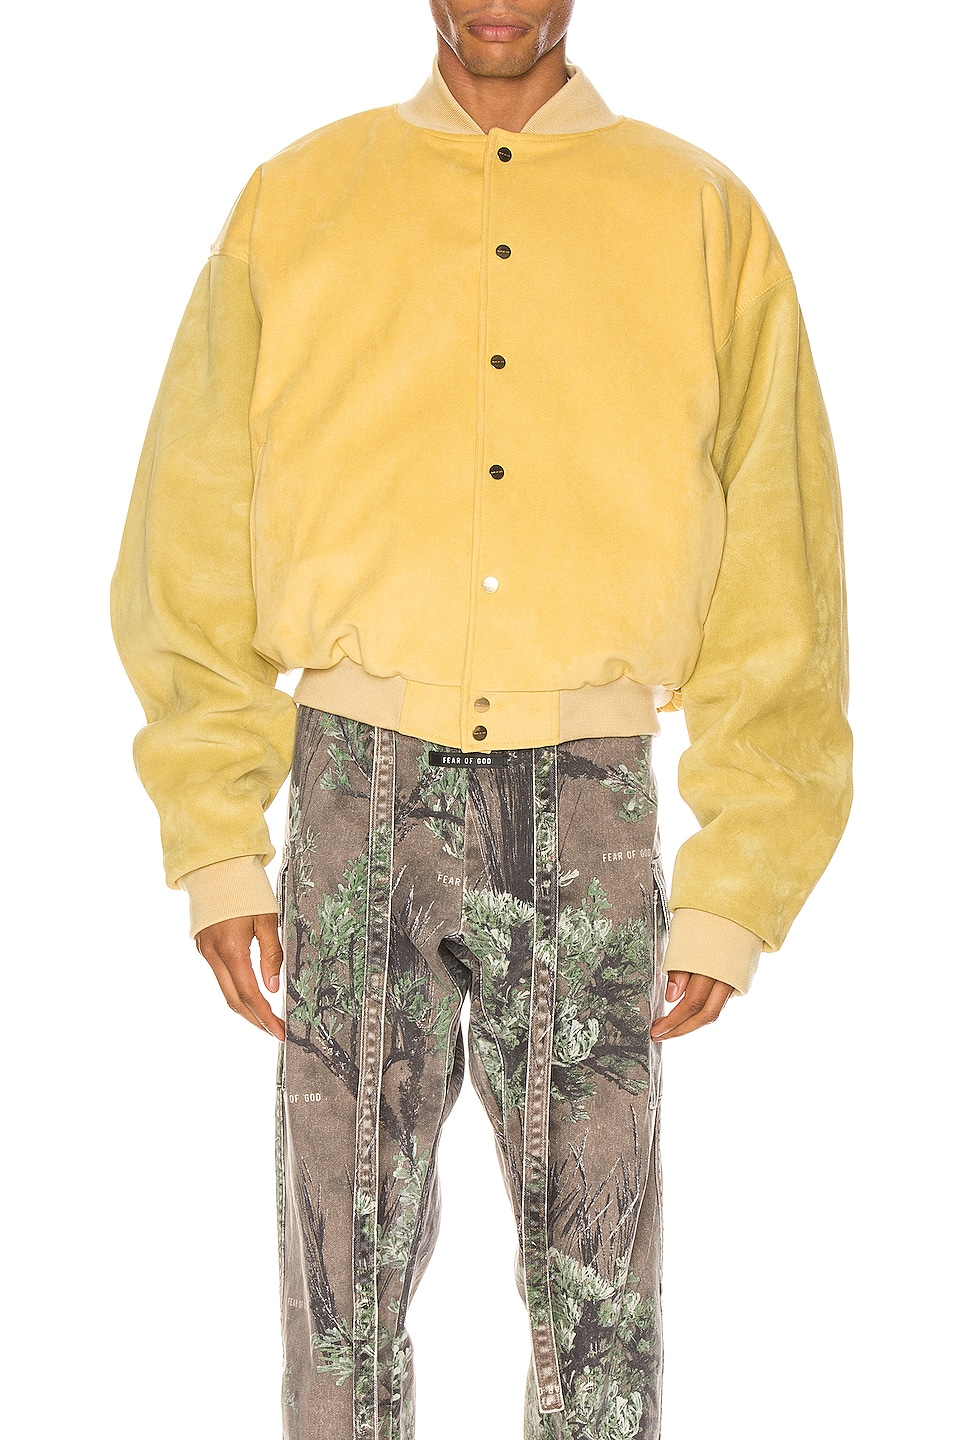 Image 3 of Fear of God 6th Collection Varsity Jacket in Garden Glove Yellow